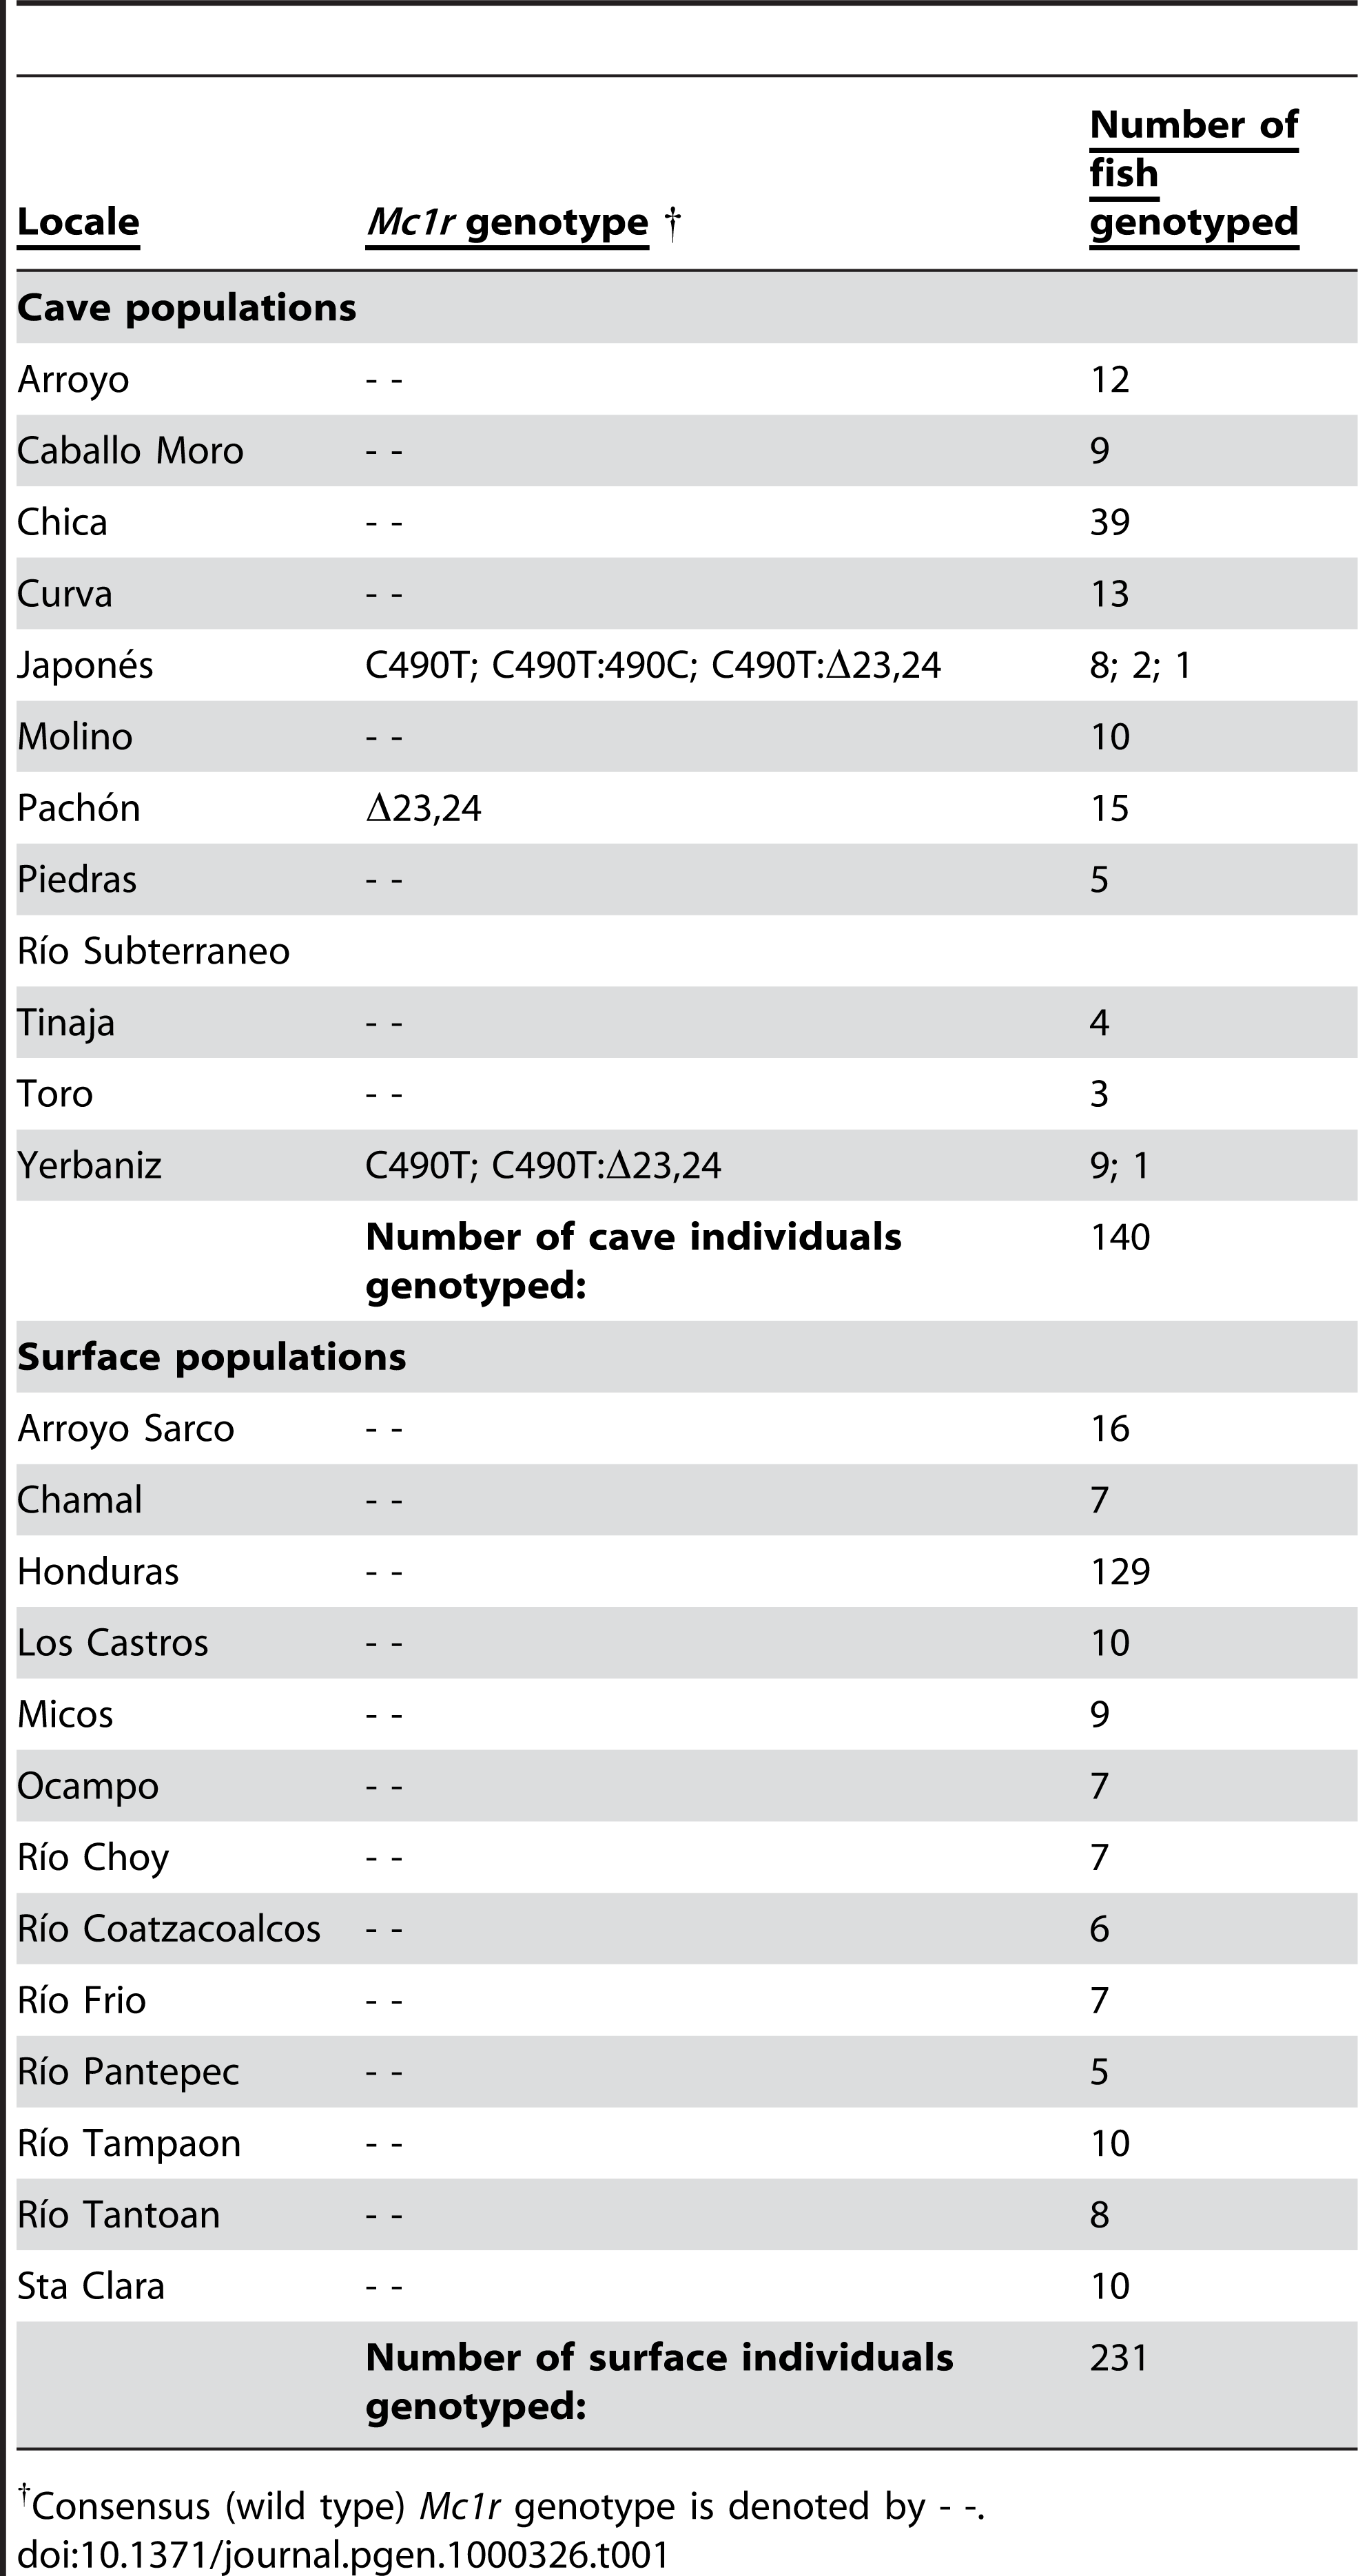 Summary of variant <i>Mc1r</i> genotypes collected from multiple cave and surface fish.